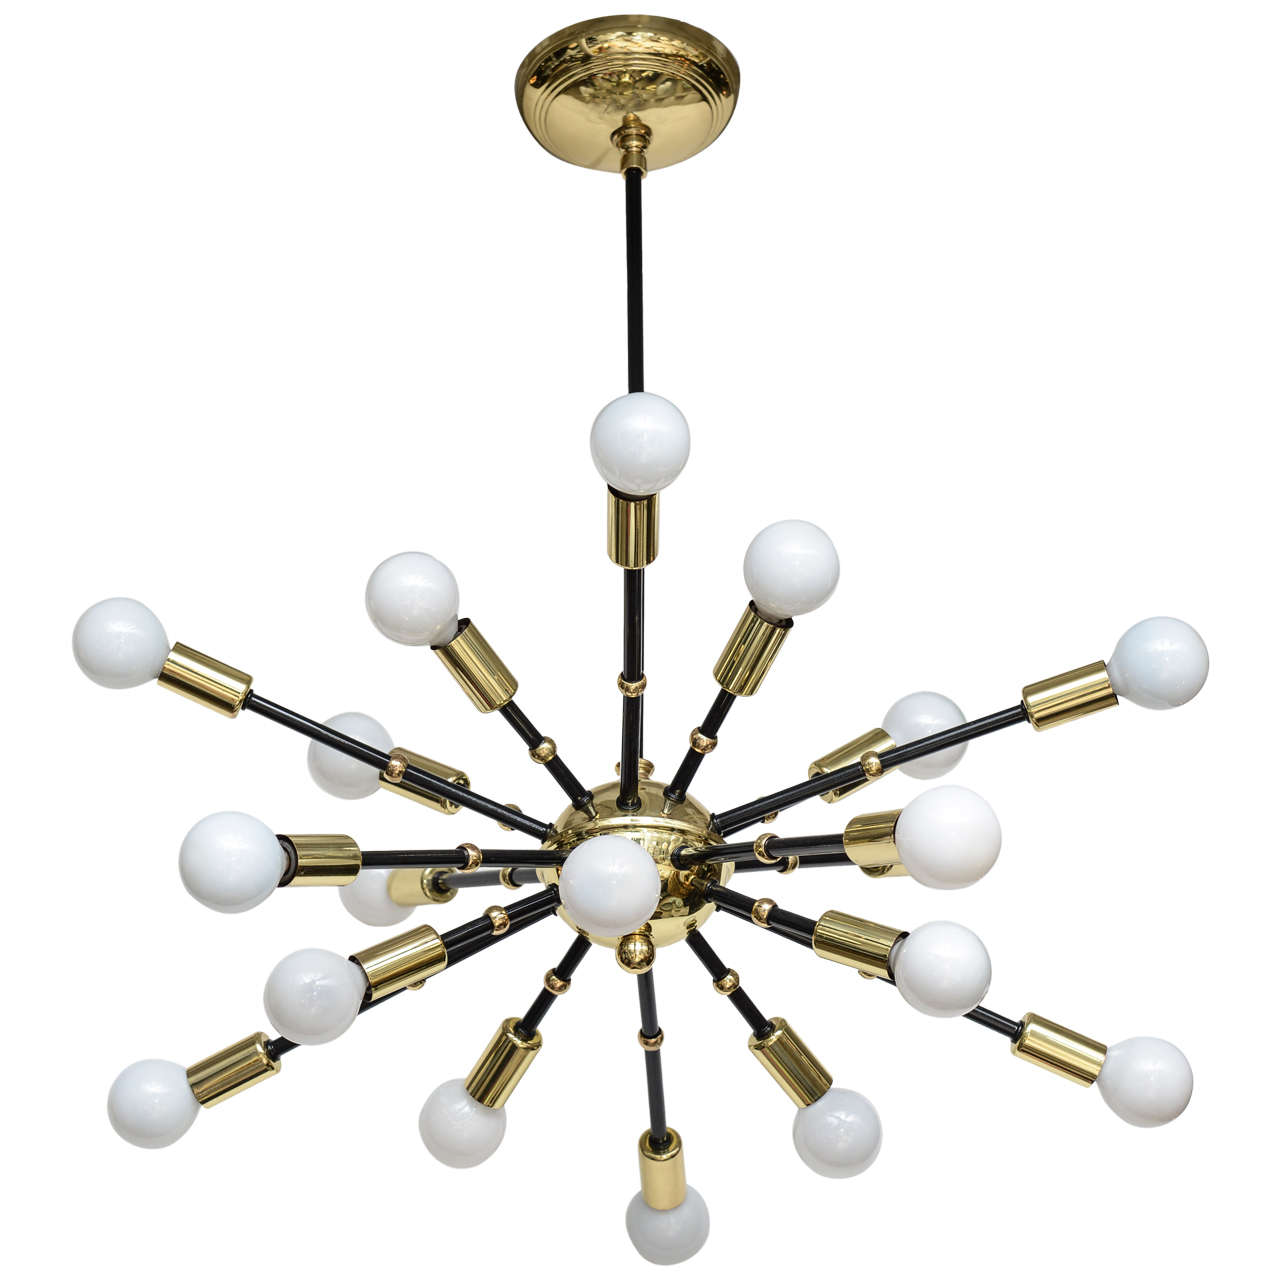 Mid century italian sputnik chandelier at 1stdibs for Contemporary chandeliers and pendants